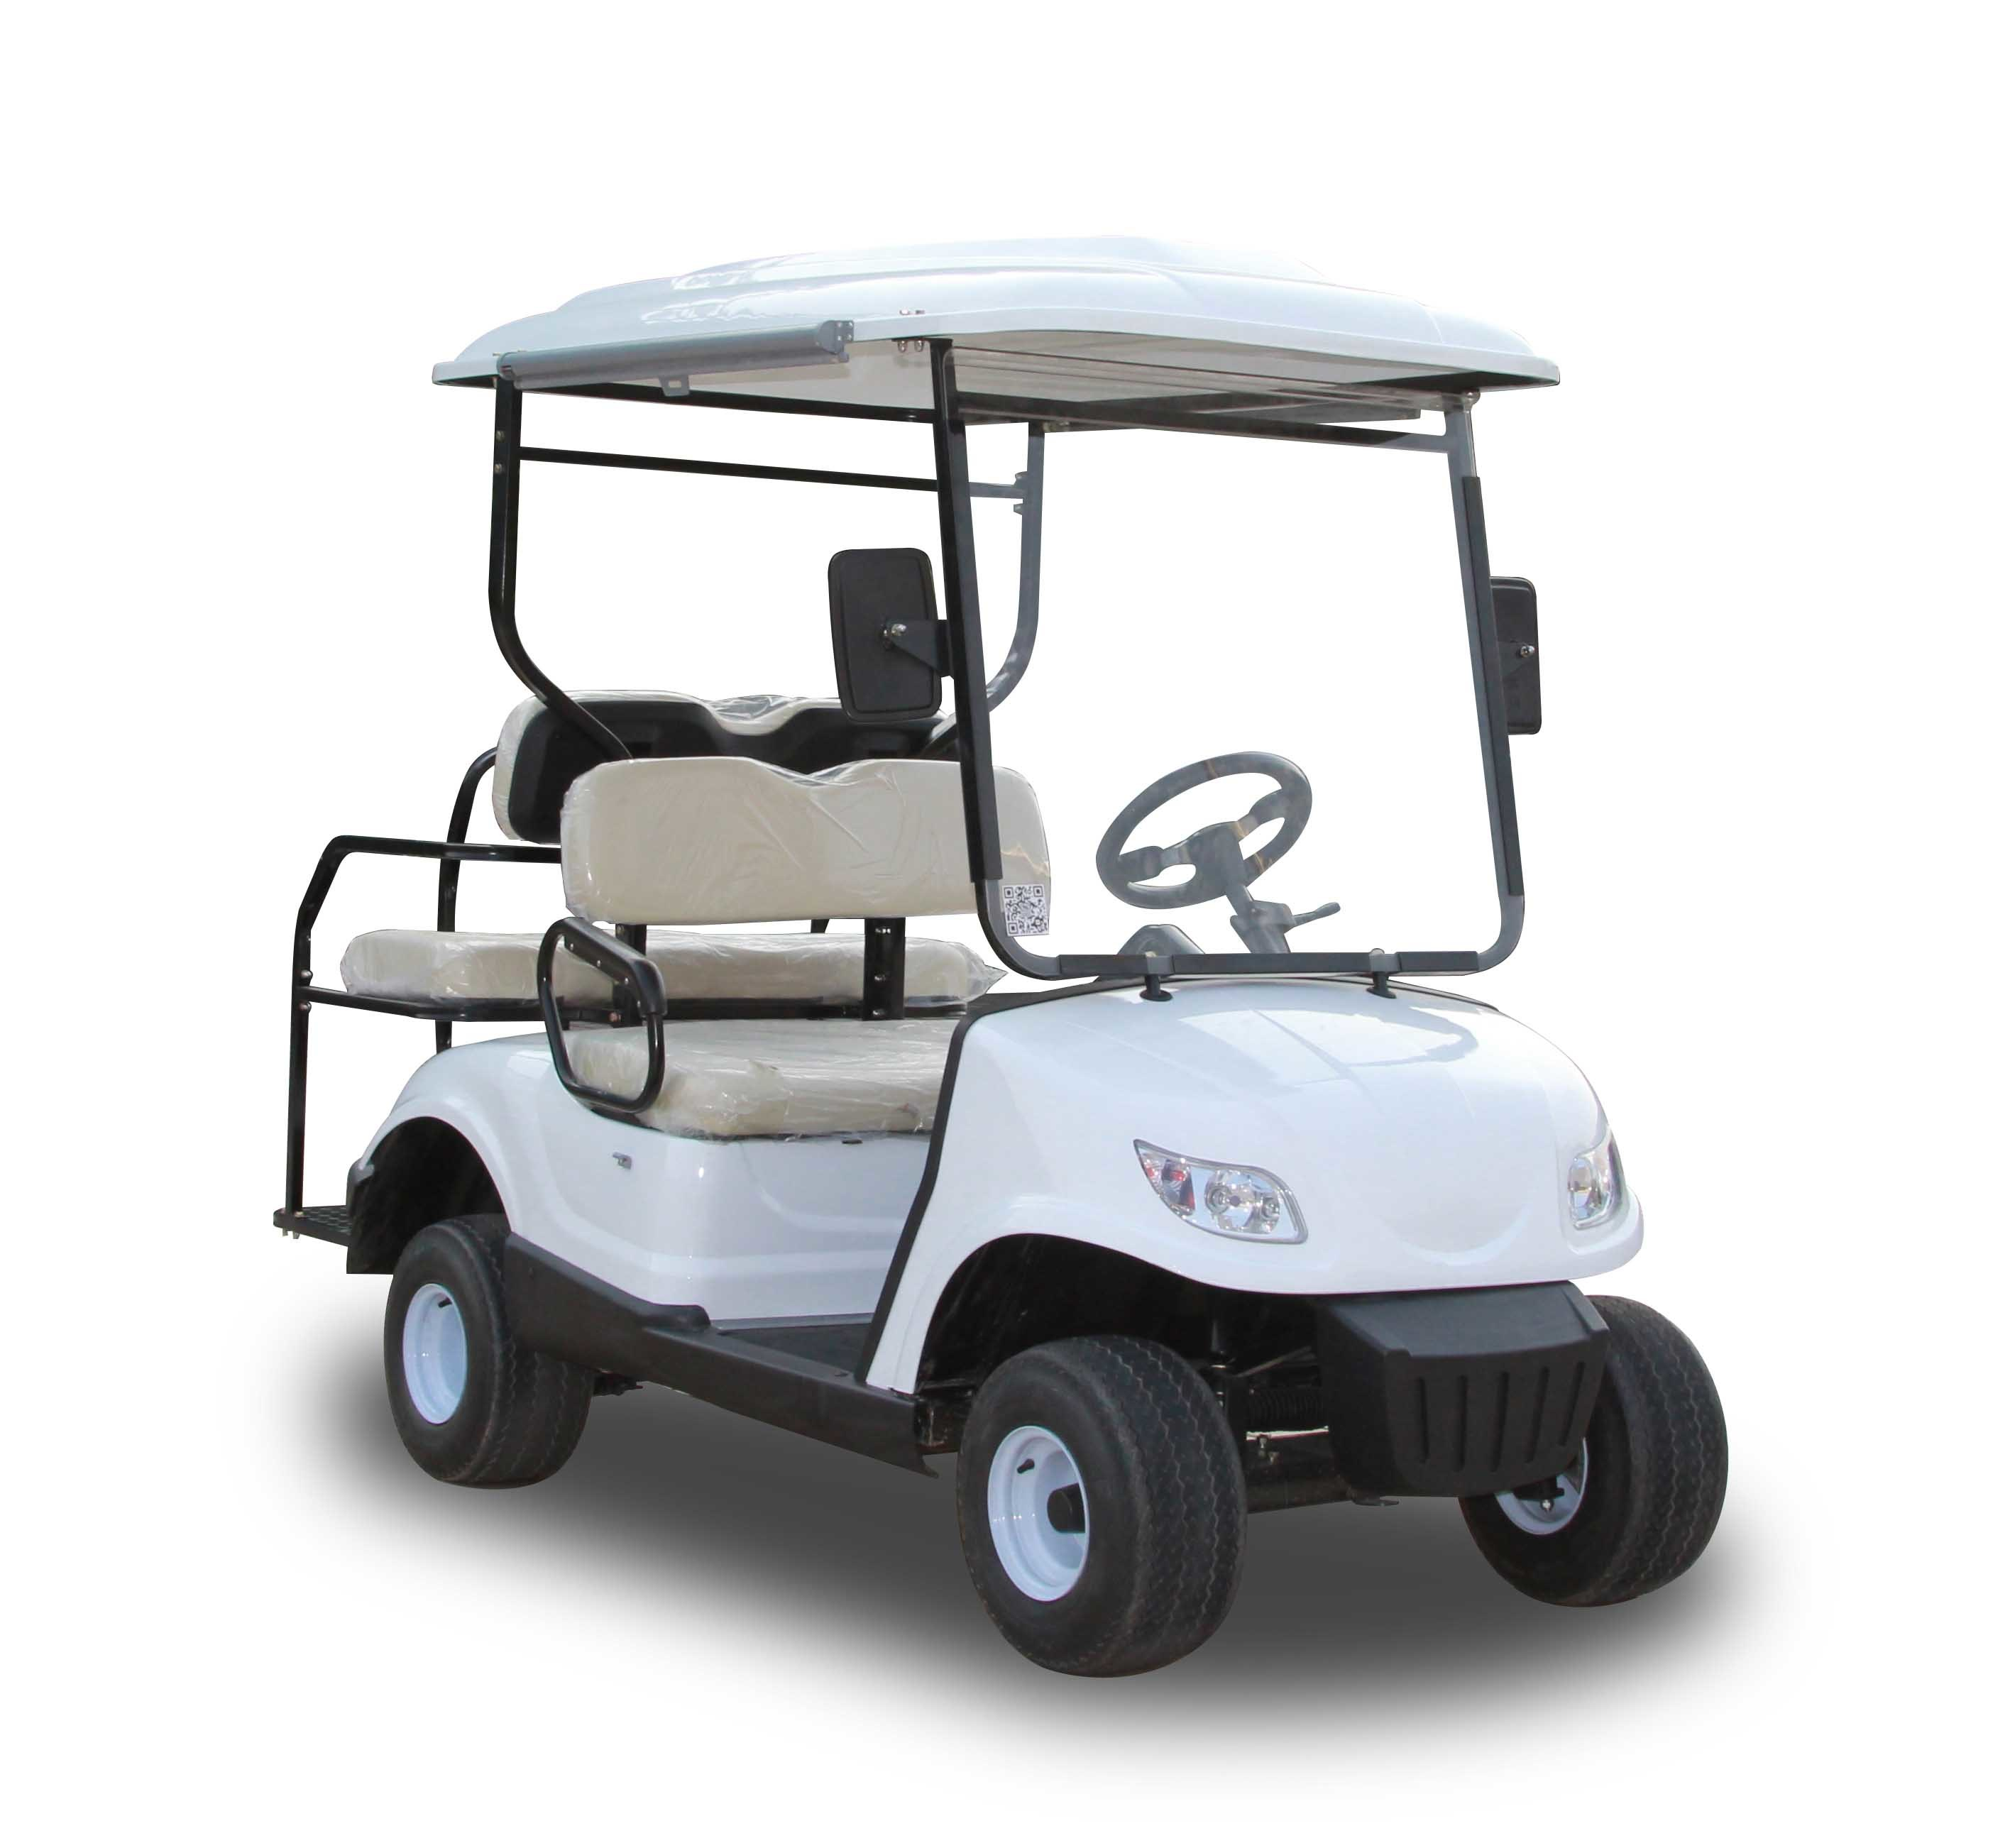 Electric Golf Caddy >> Hot Item Best Price 4 Seats Electric Golf Carts Battery Powered Electric Caddy Carts